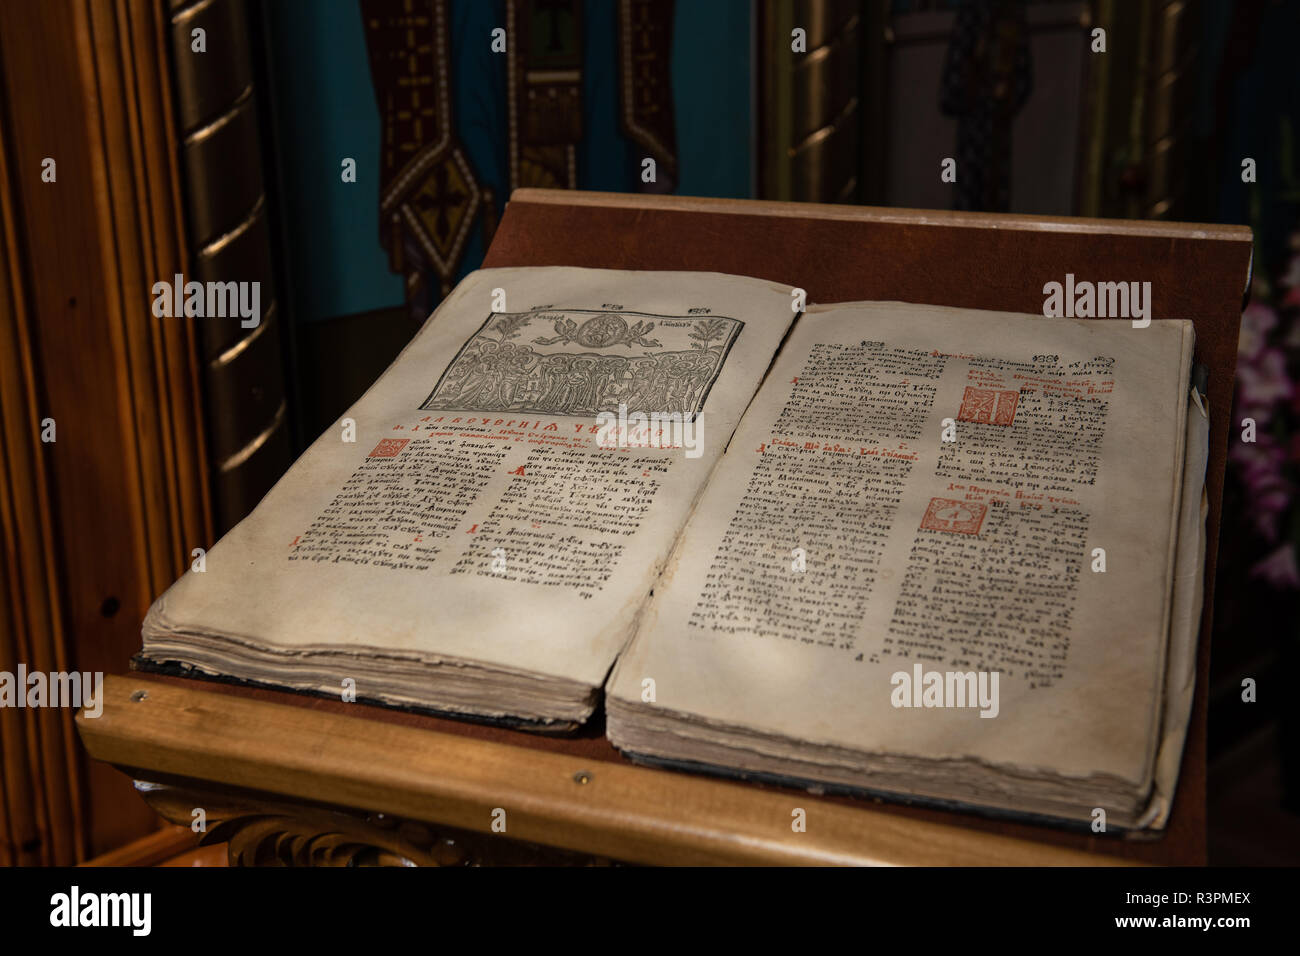 Old Christian manuscript written in Cyrillic on church pulpit. - Stock Image